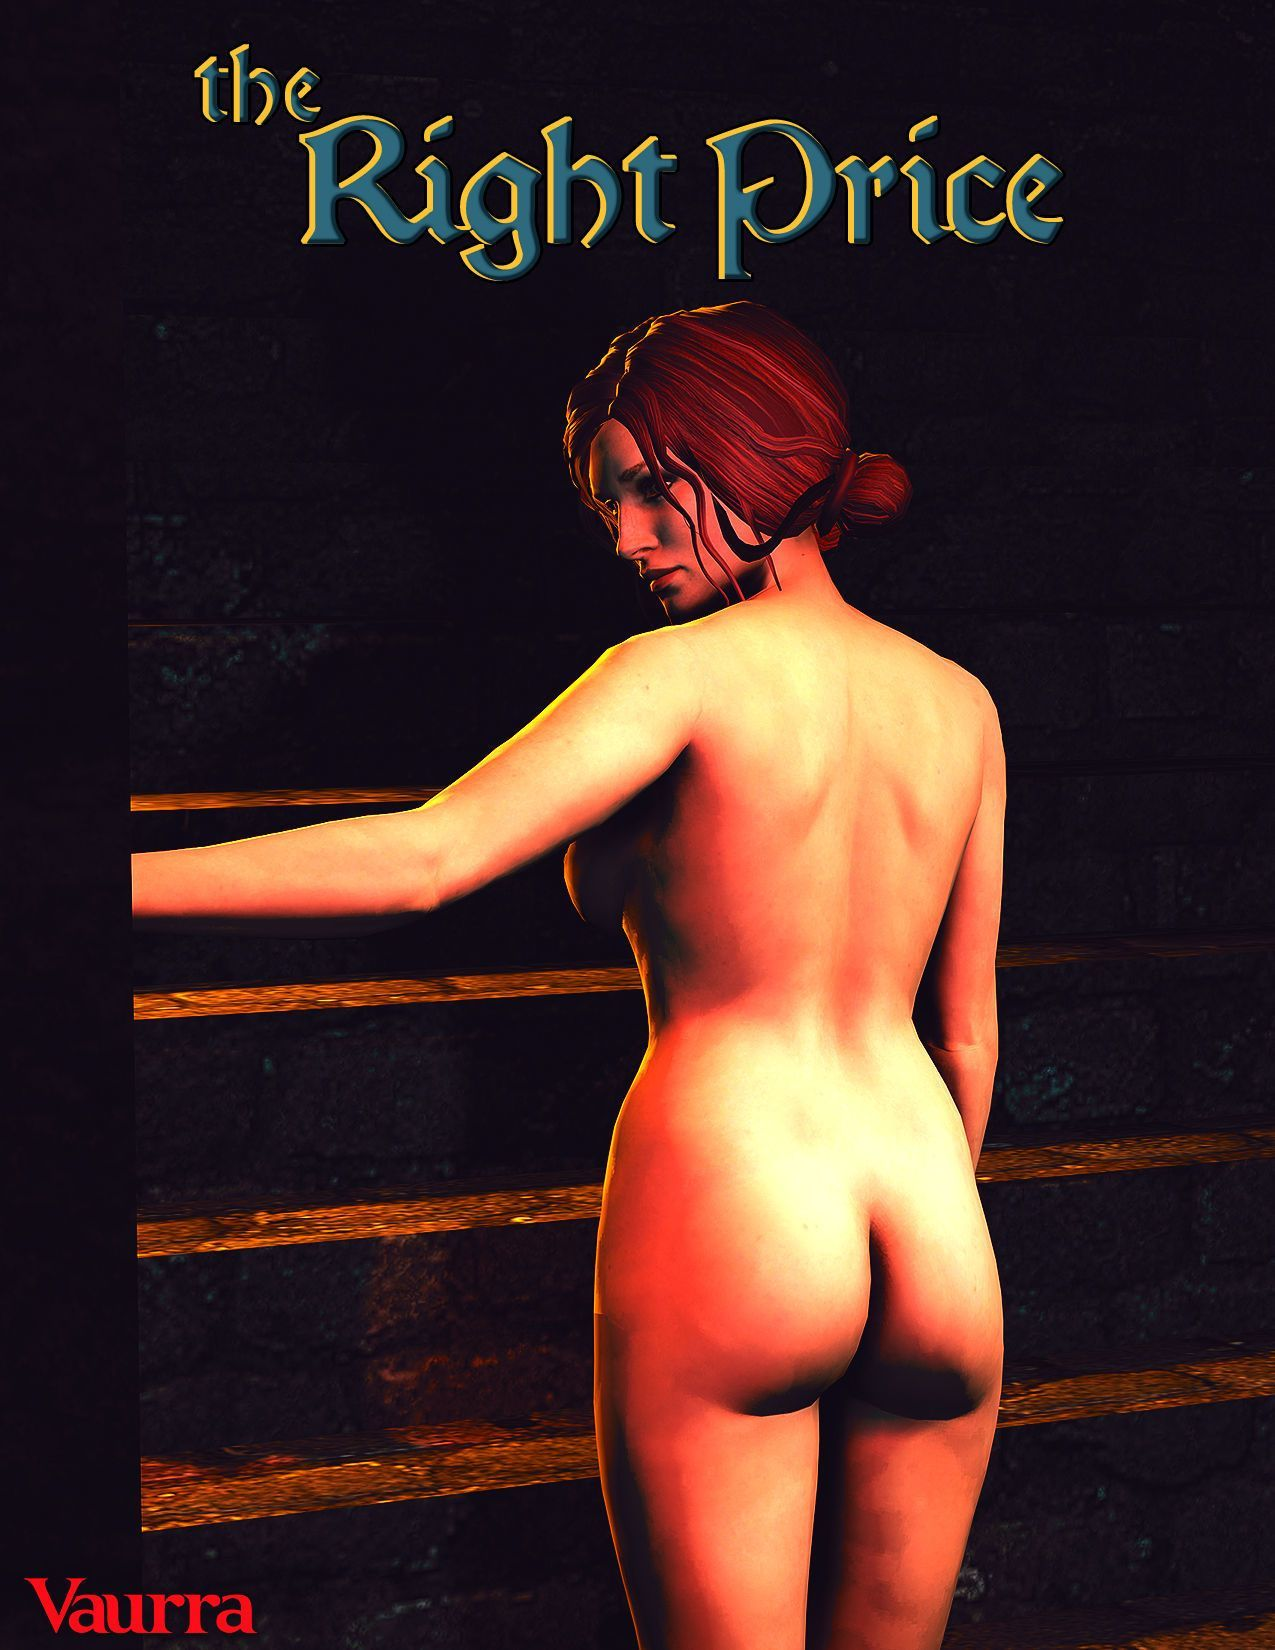 [Vaurra] The Right Price (The Witcher)